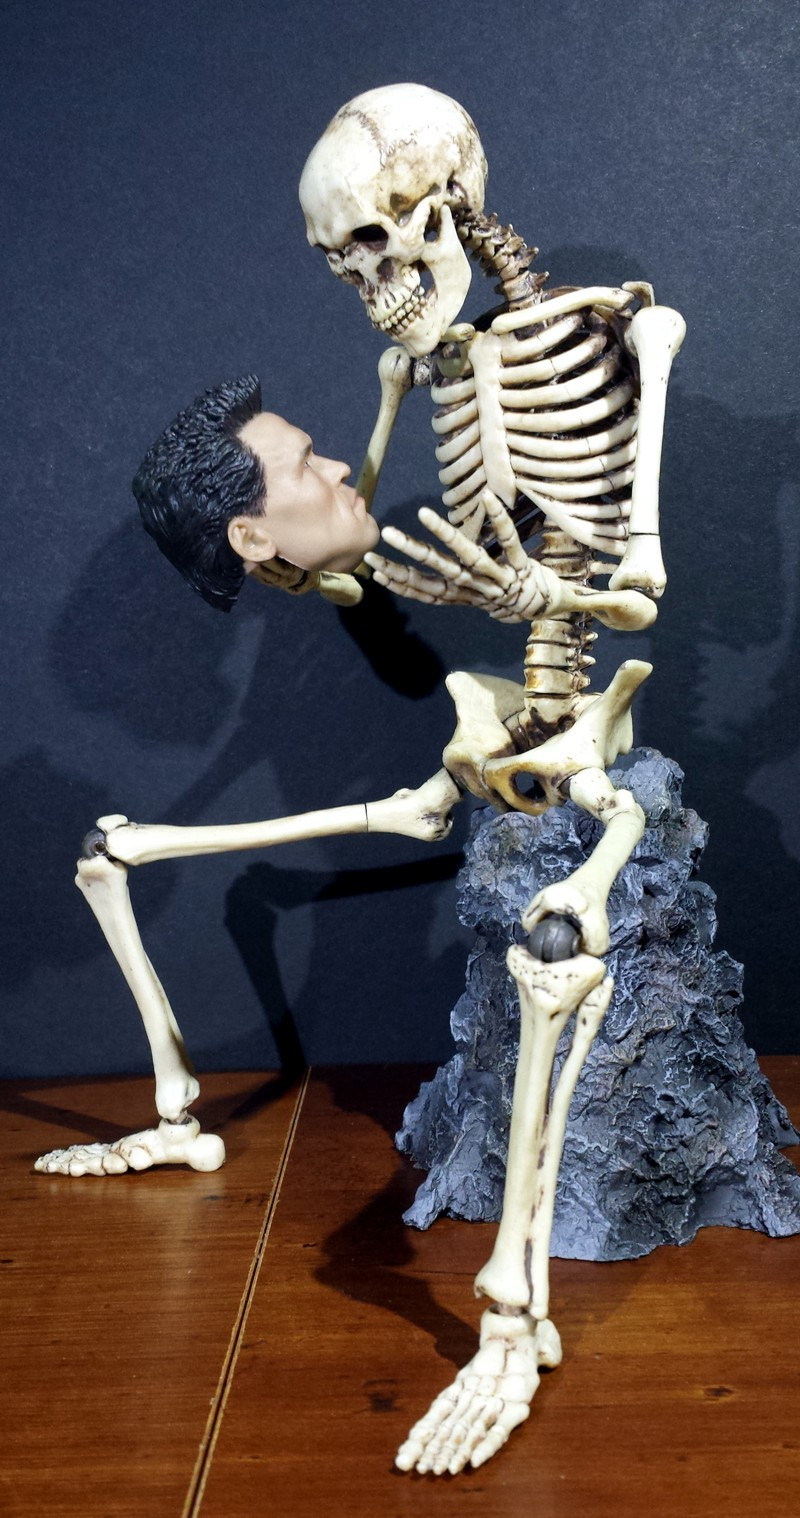 Human Skeleton sixth scale action figure by COO/COOMODEL